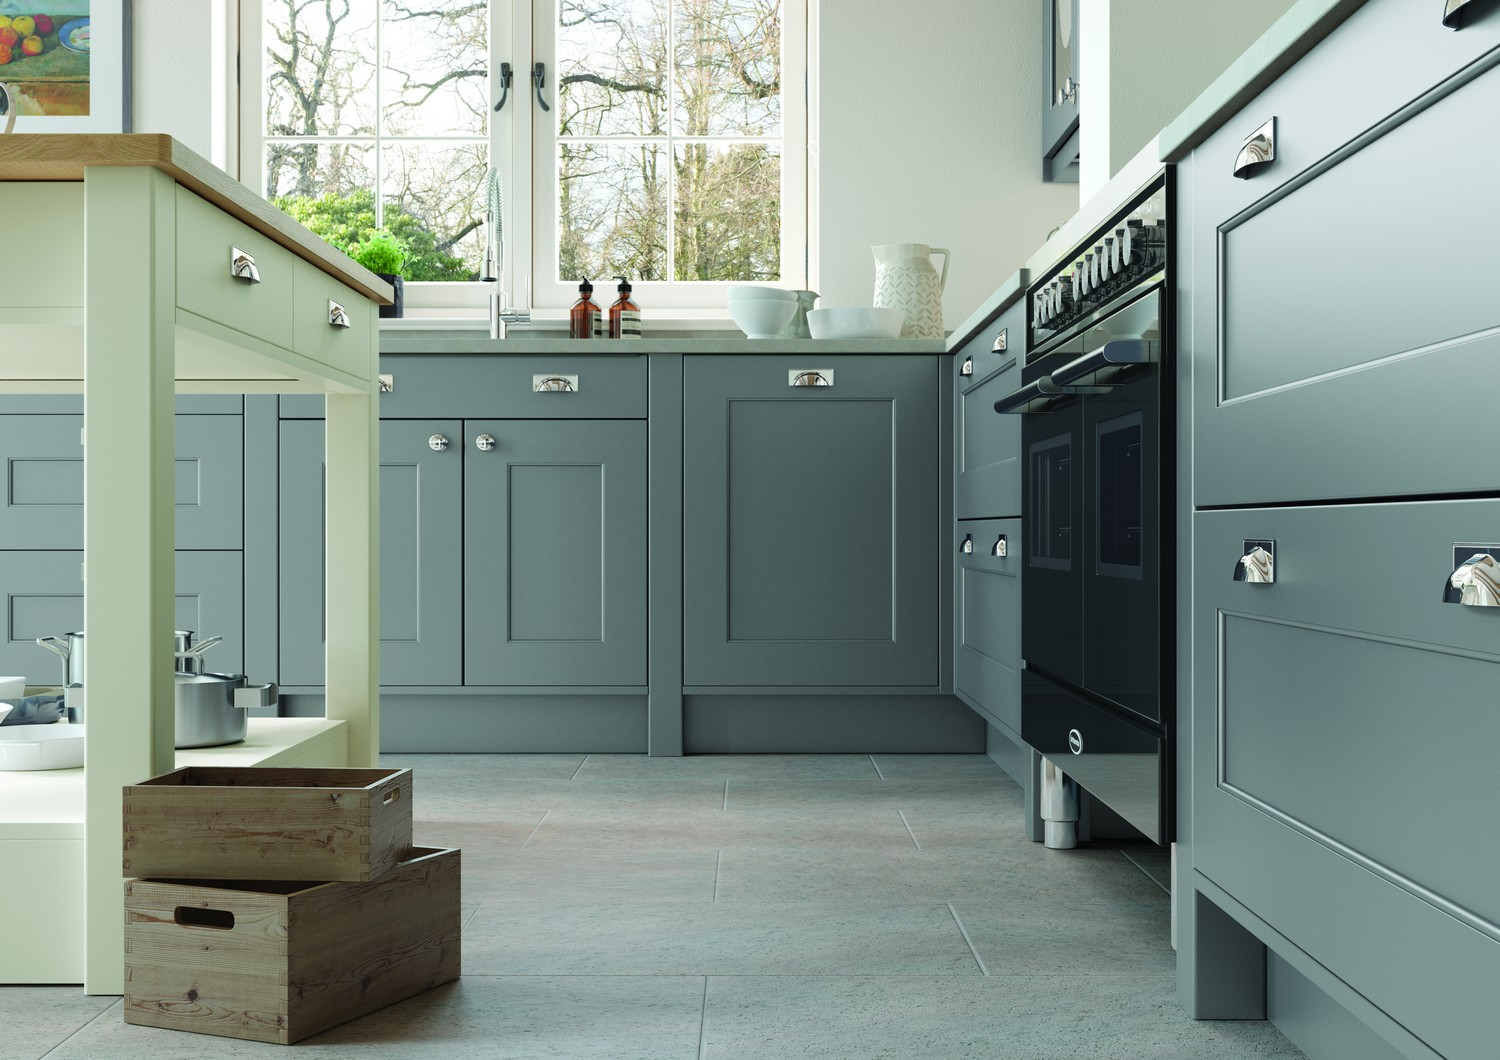 Stone Grey shaker kitchen design with chrome door knobs and drawer pulls.